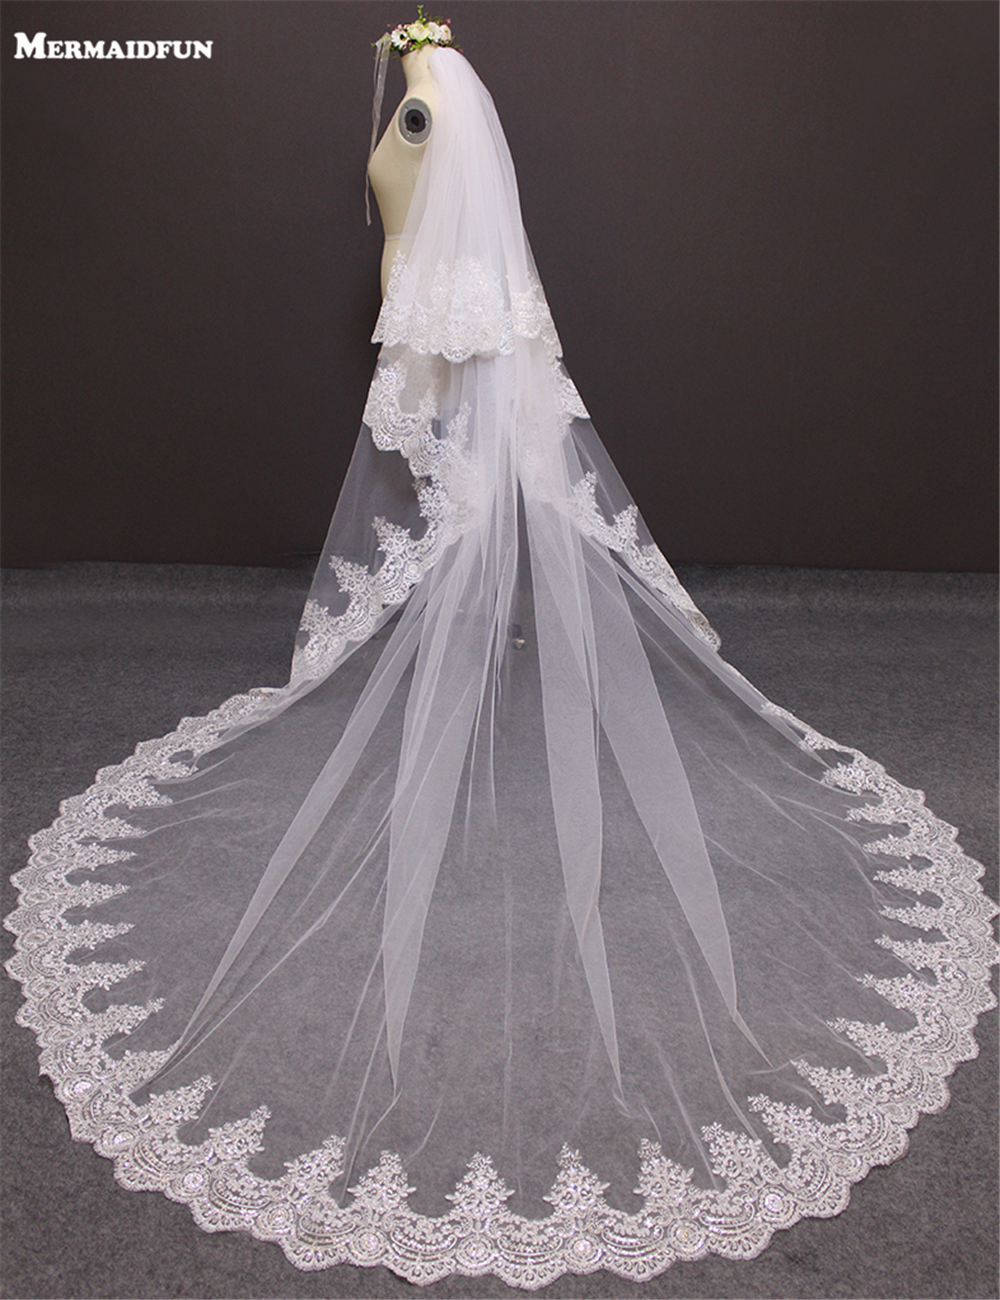 3 Meters Two Layers Full Edge With Sequins Blings Sparkling Lace  Luxury Long Wedding Veils White Ivory Bridal Veil